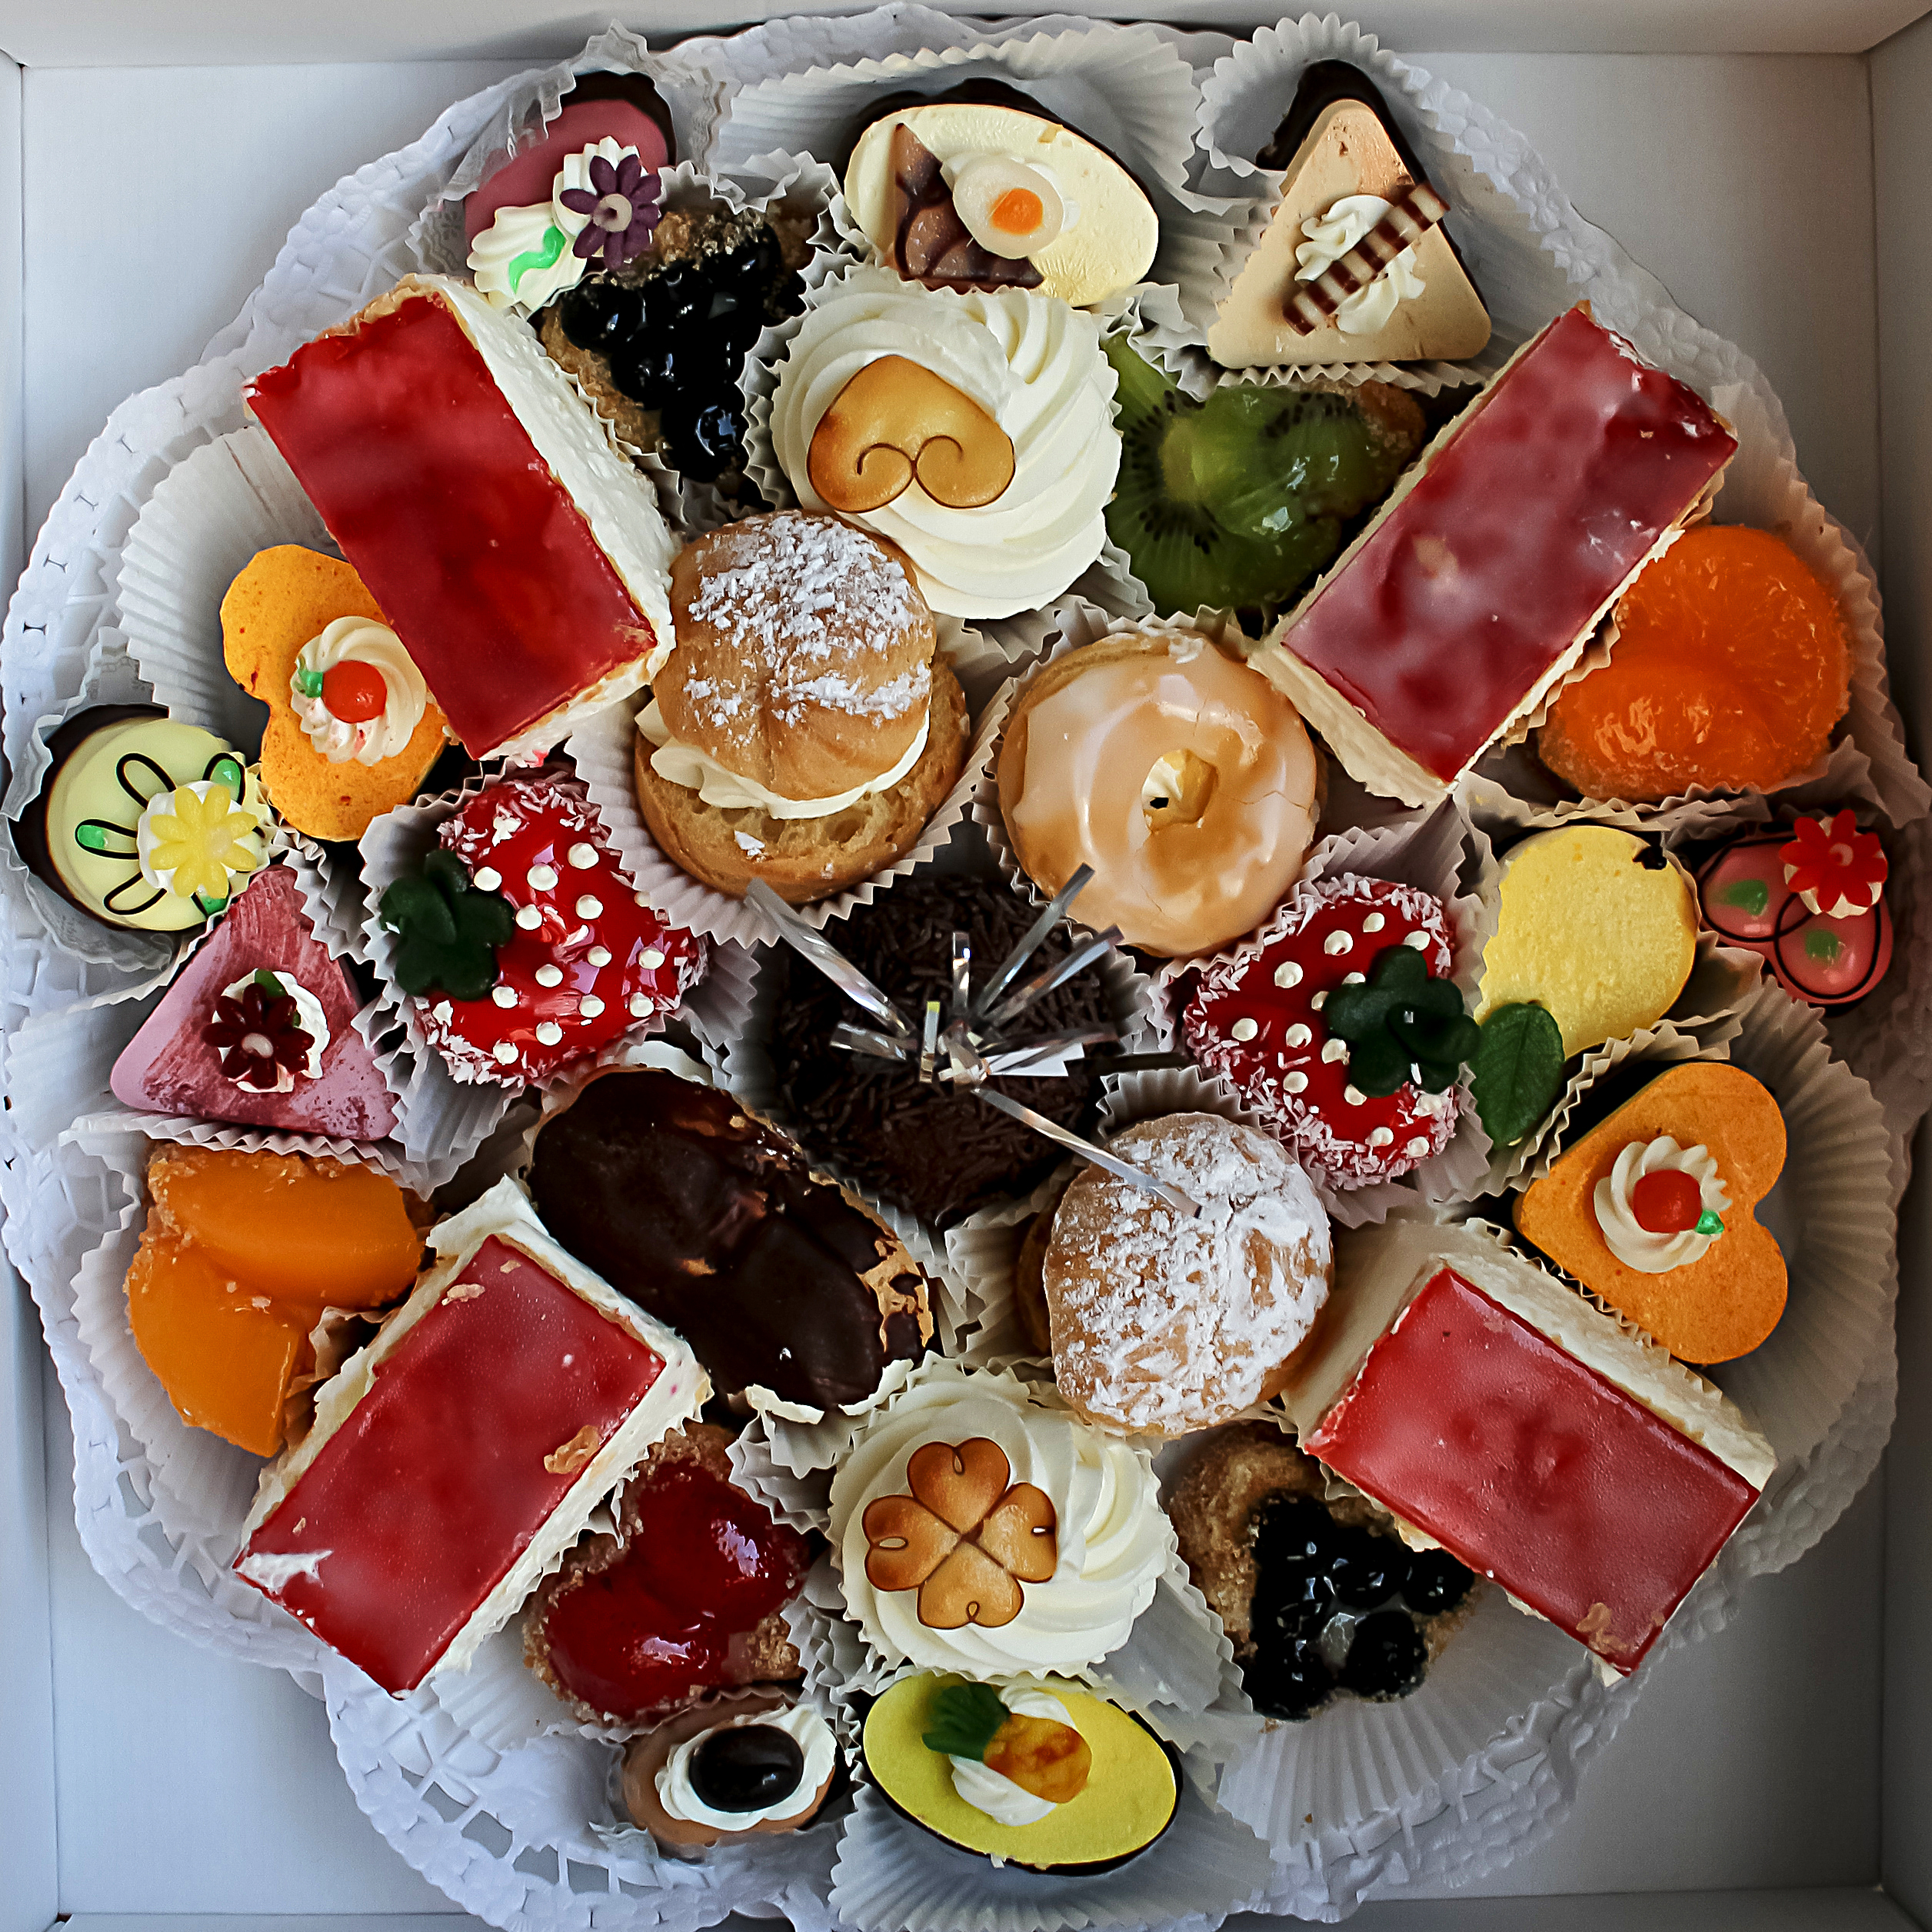 Forum on this topic: Mini Cakes and Desserts That Help You , mini-cakes-and-desserts-that-help-you/